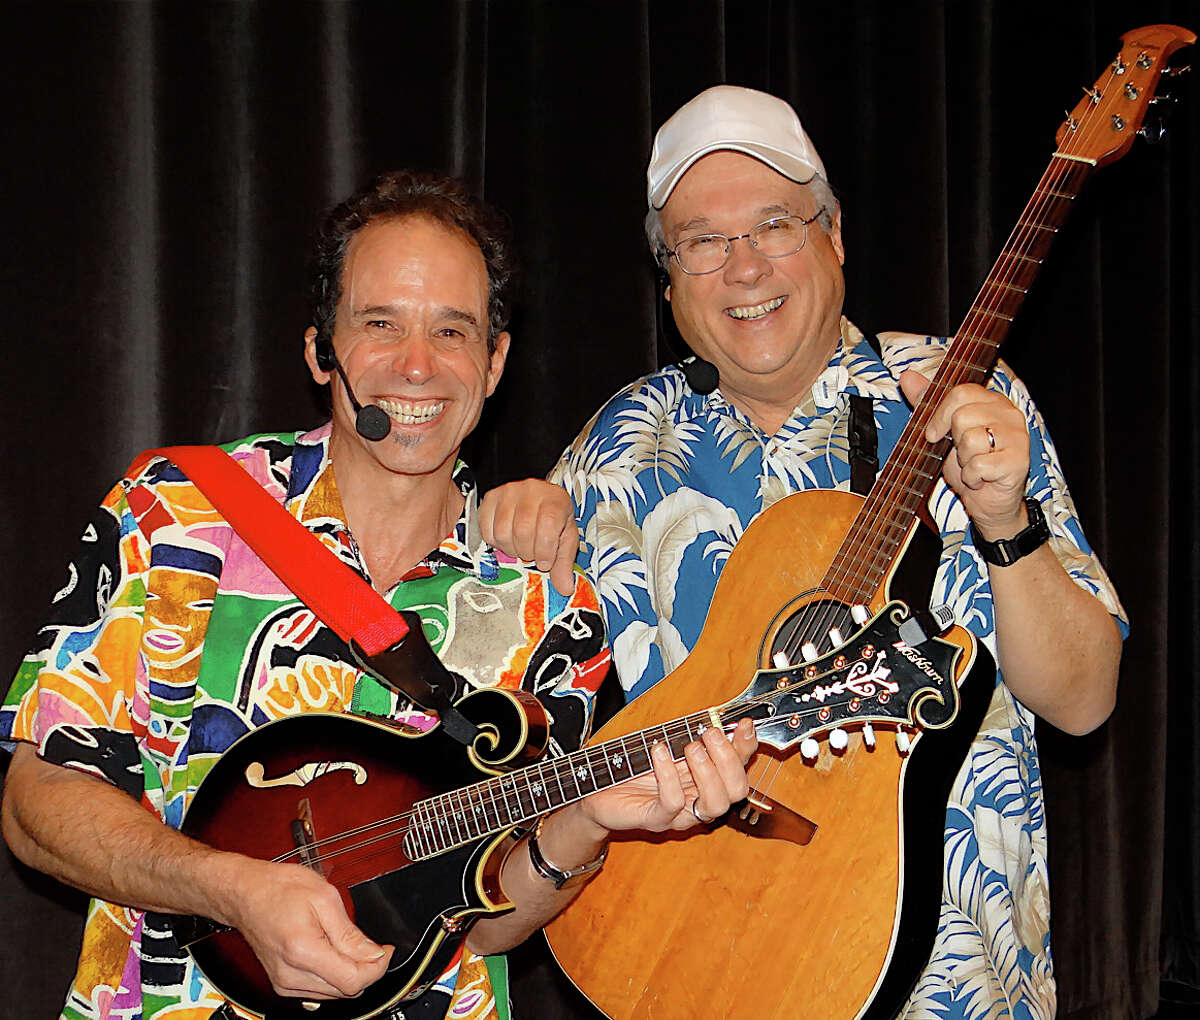 Grammy Award winner Les Julian and T-Bone performed at the Friday concert to benefit Philippine typhoon relief efforts Friday, organized by the Town Youth Council.